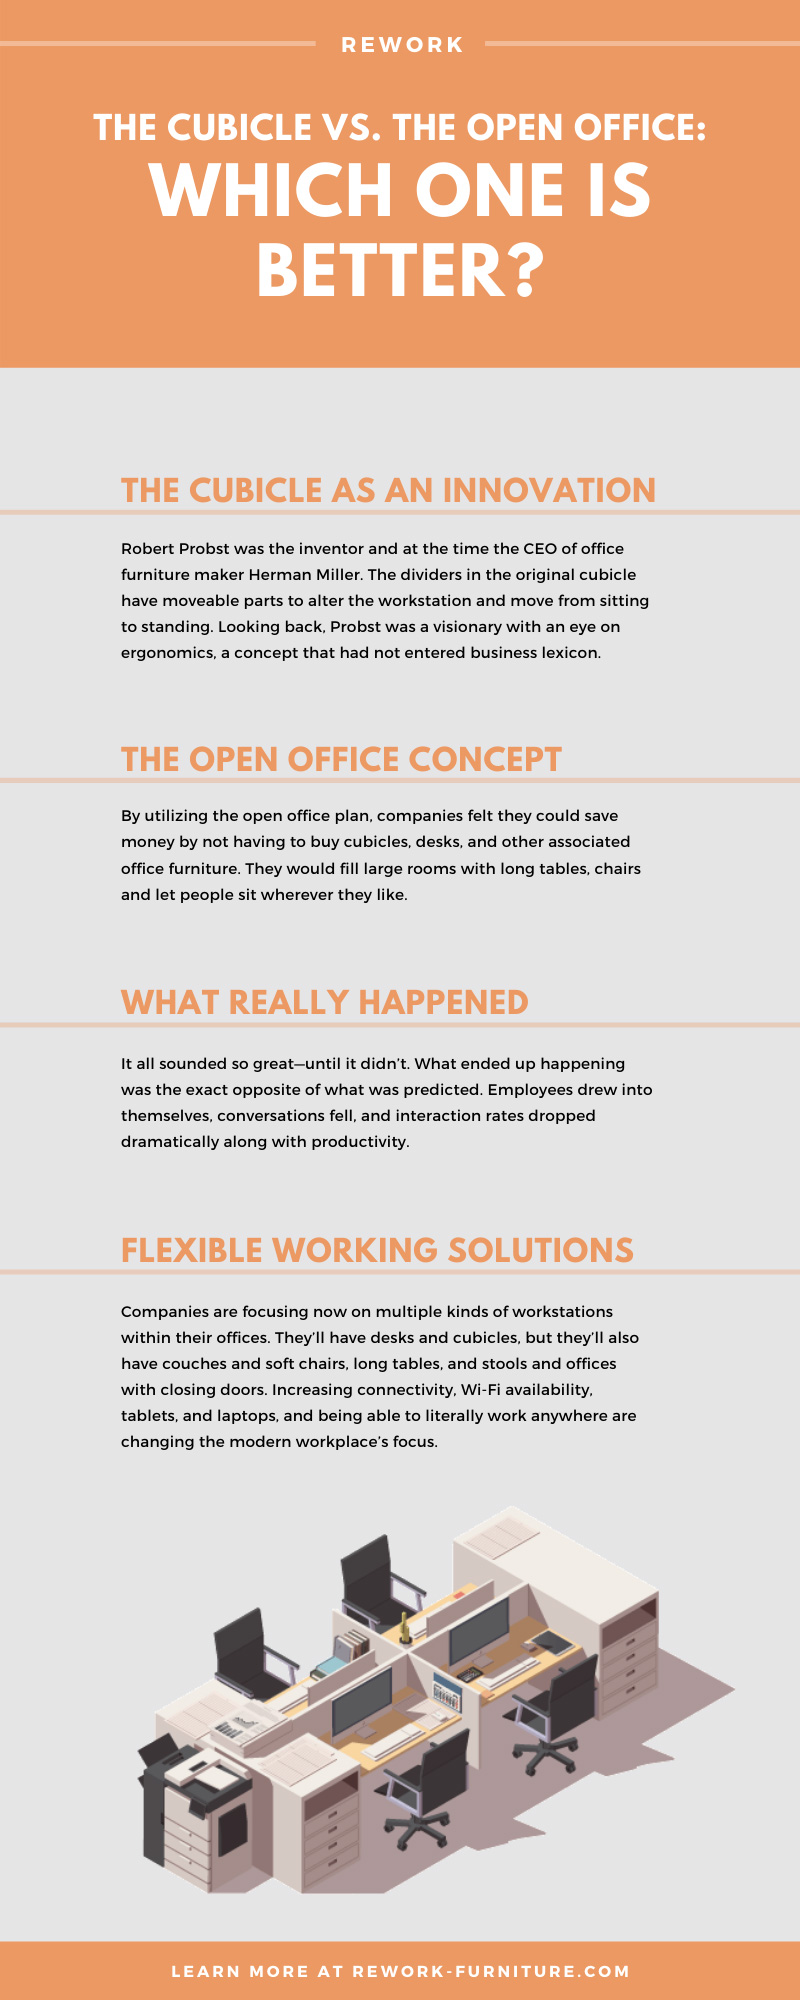 The Cubicle vs. The Open Office